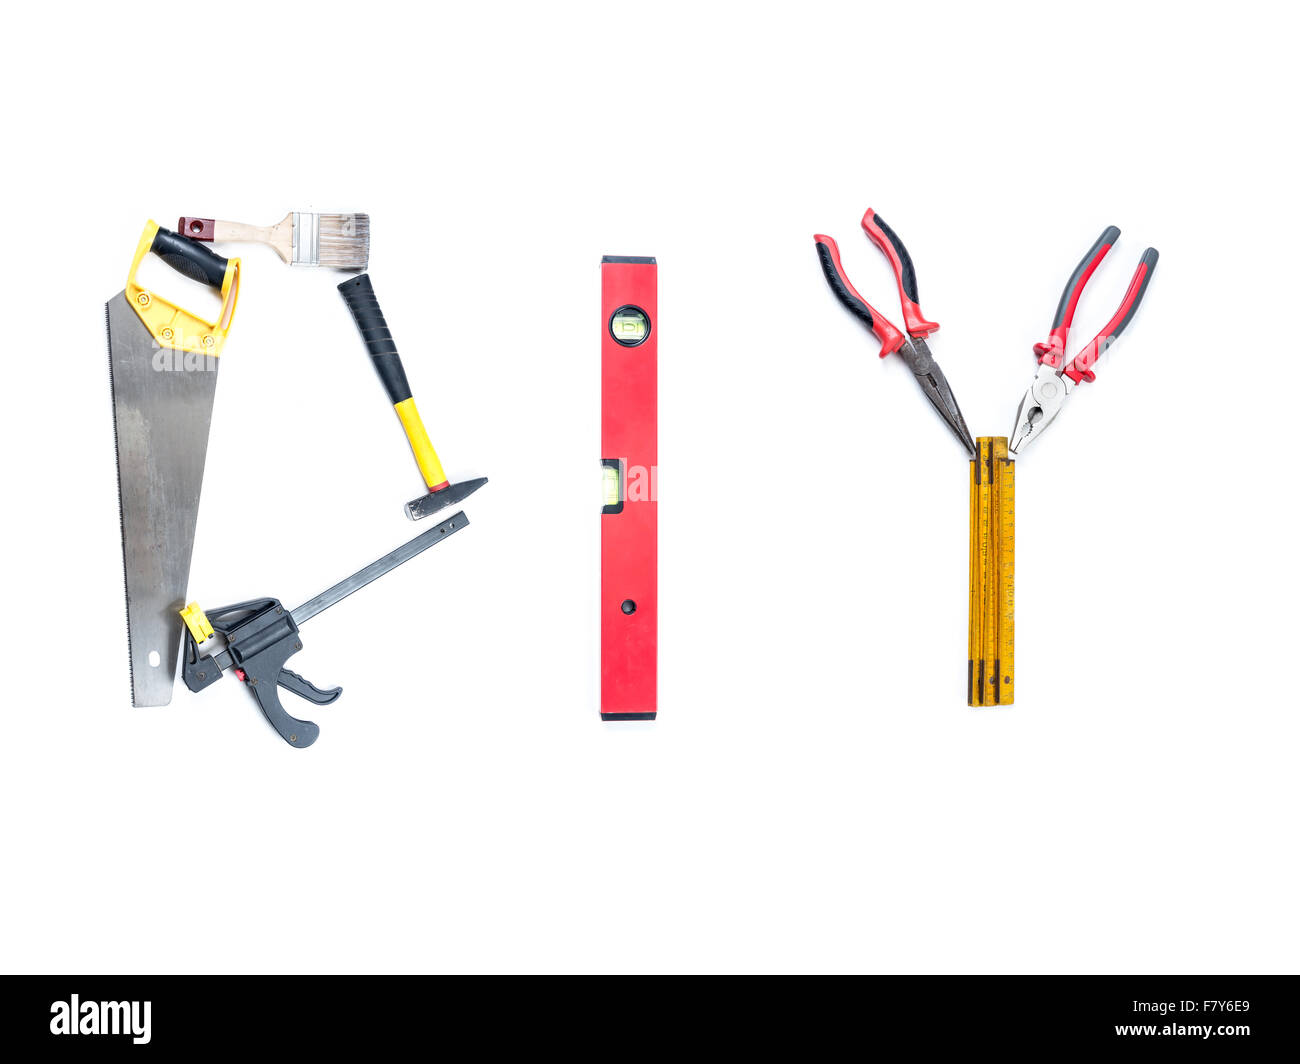 DIY acronym arranged from set of different tools and accessories shot on white - Stock Image